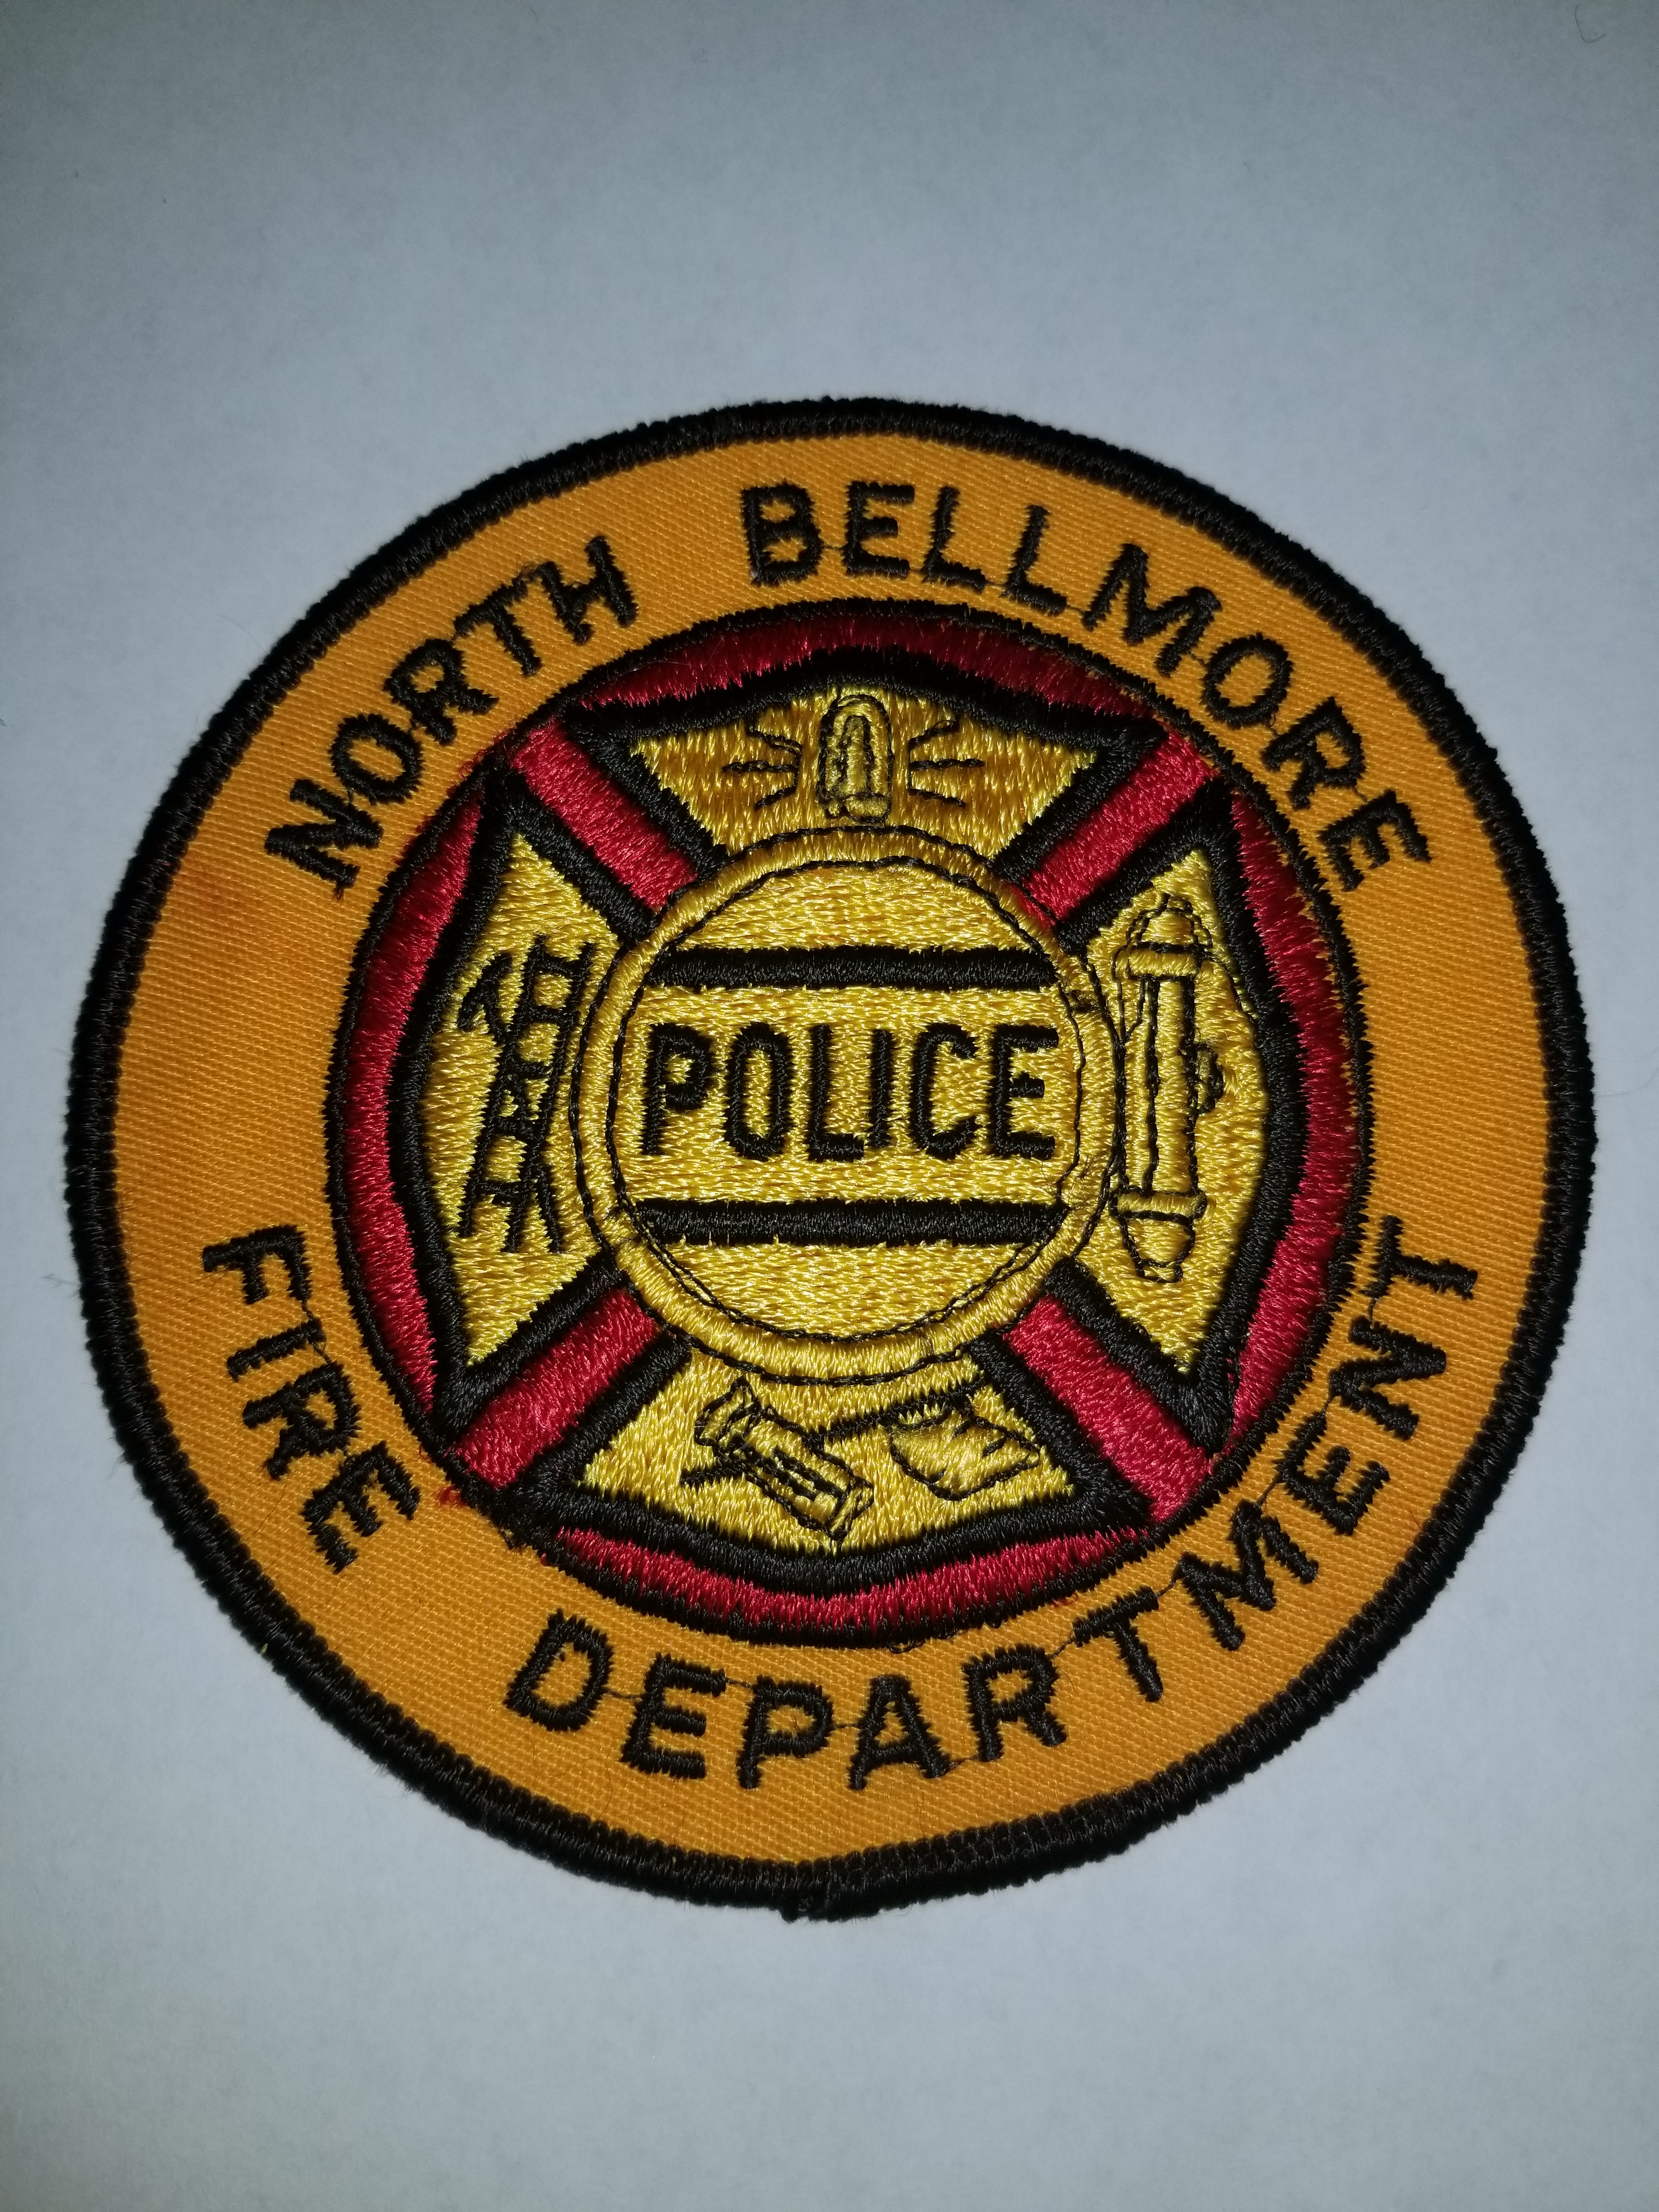 North Bellmore Fire Department Police NY